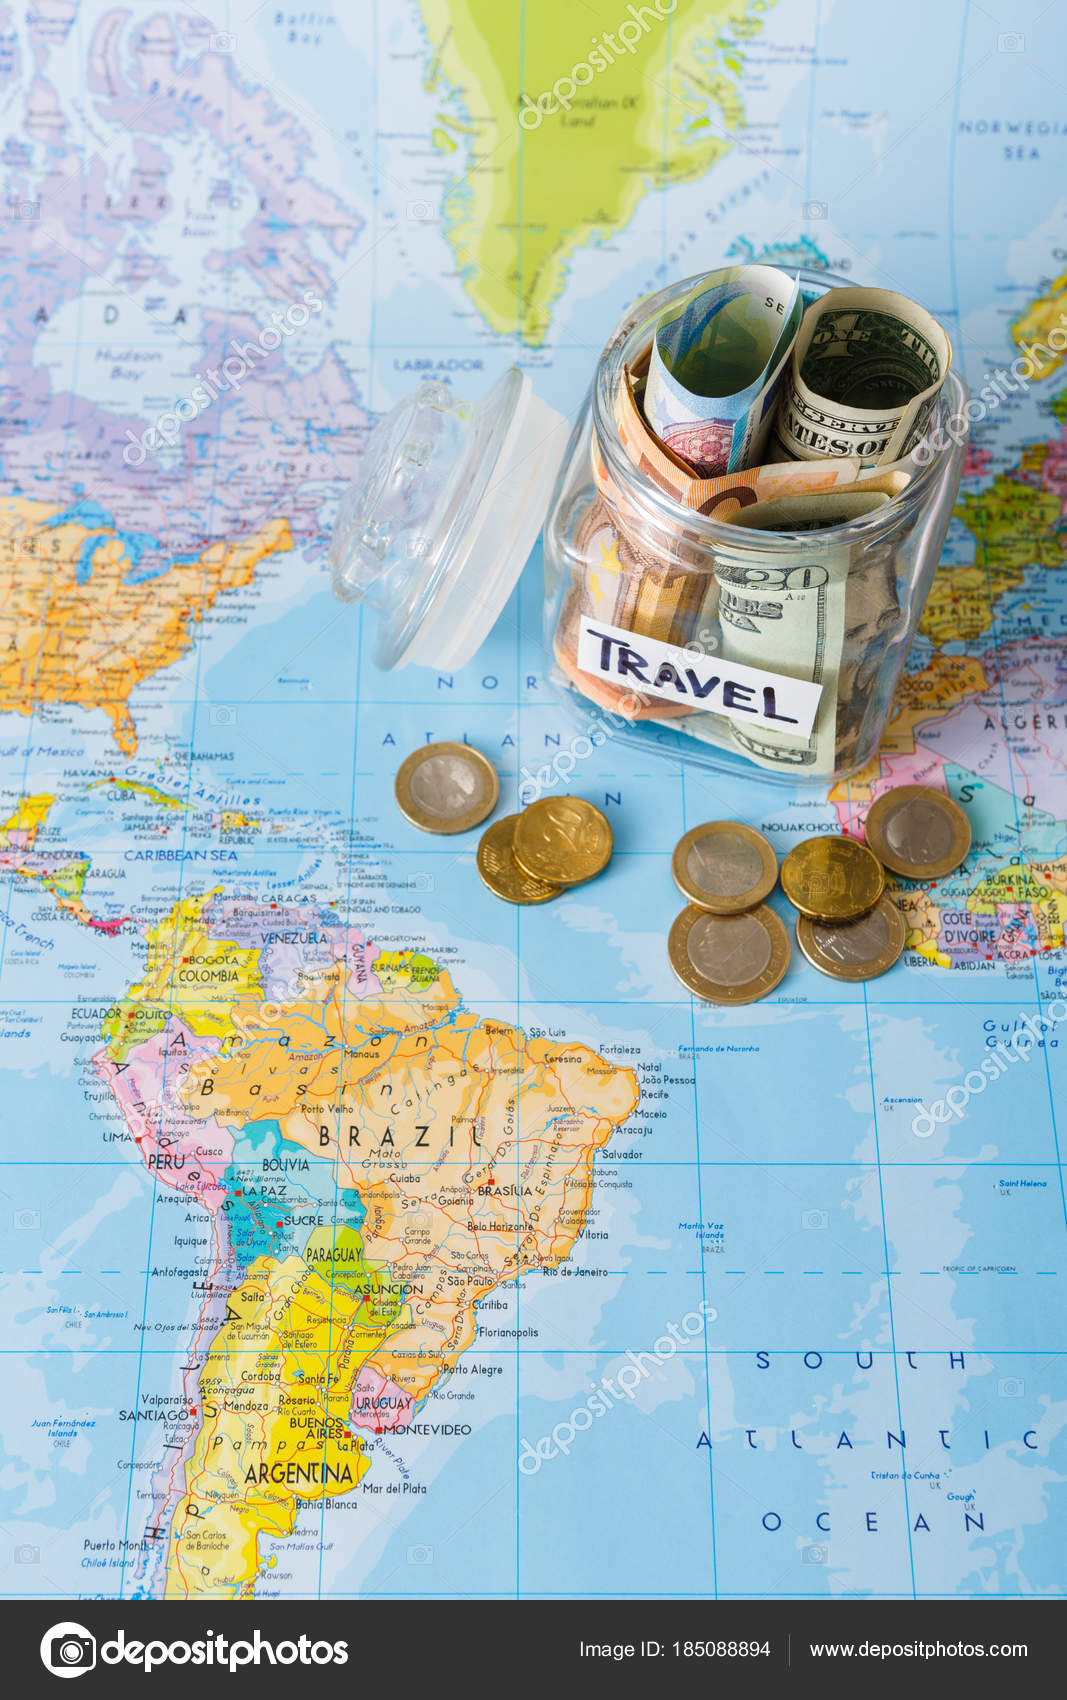 Travel budget concept money saved for vacation in glass jar on map money saved for vacation in glass jar on world map background top view banknotes and coins for big adventure photo by milkos gumiabroncs Choice Image